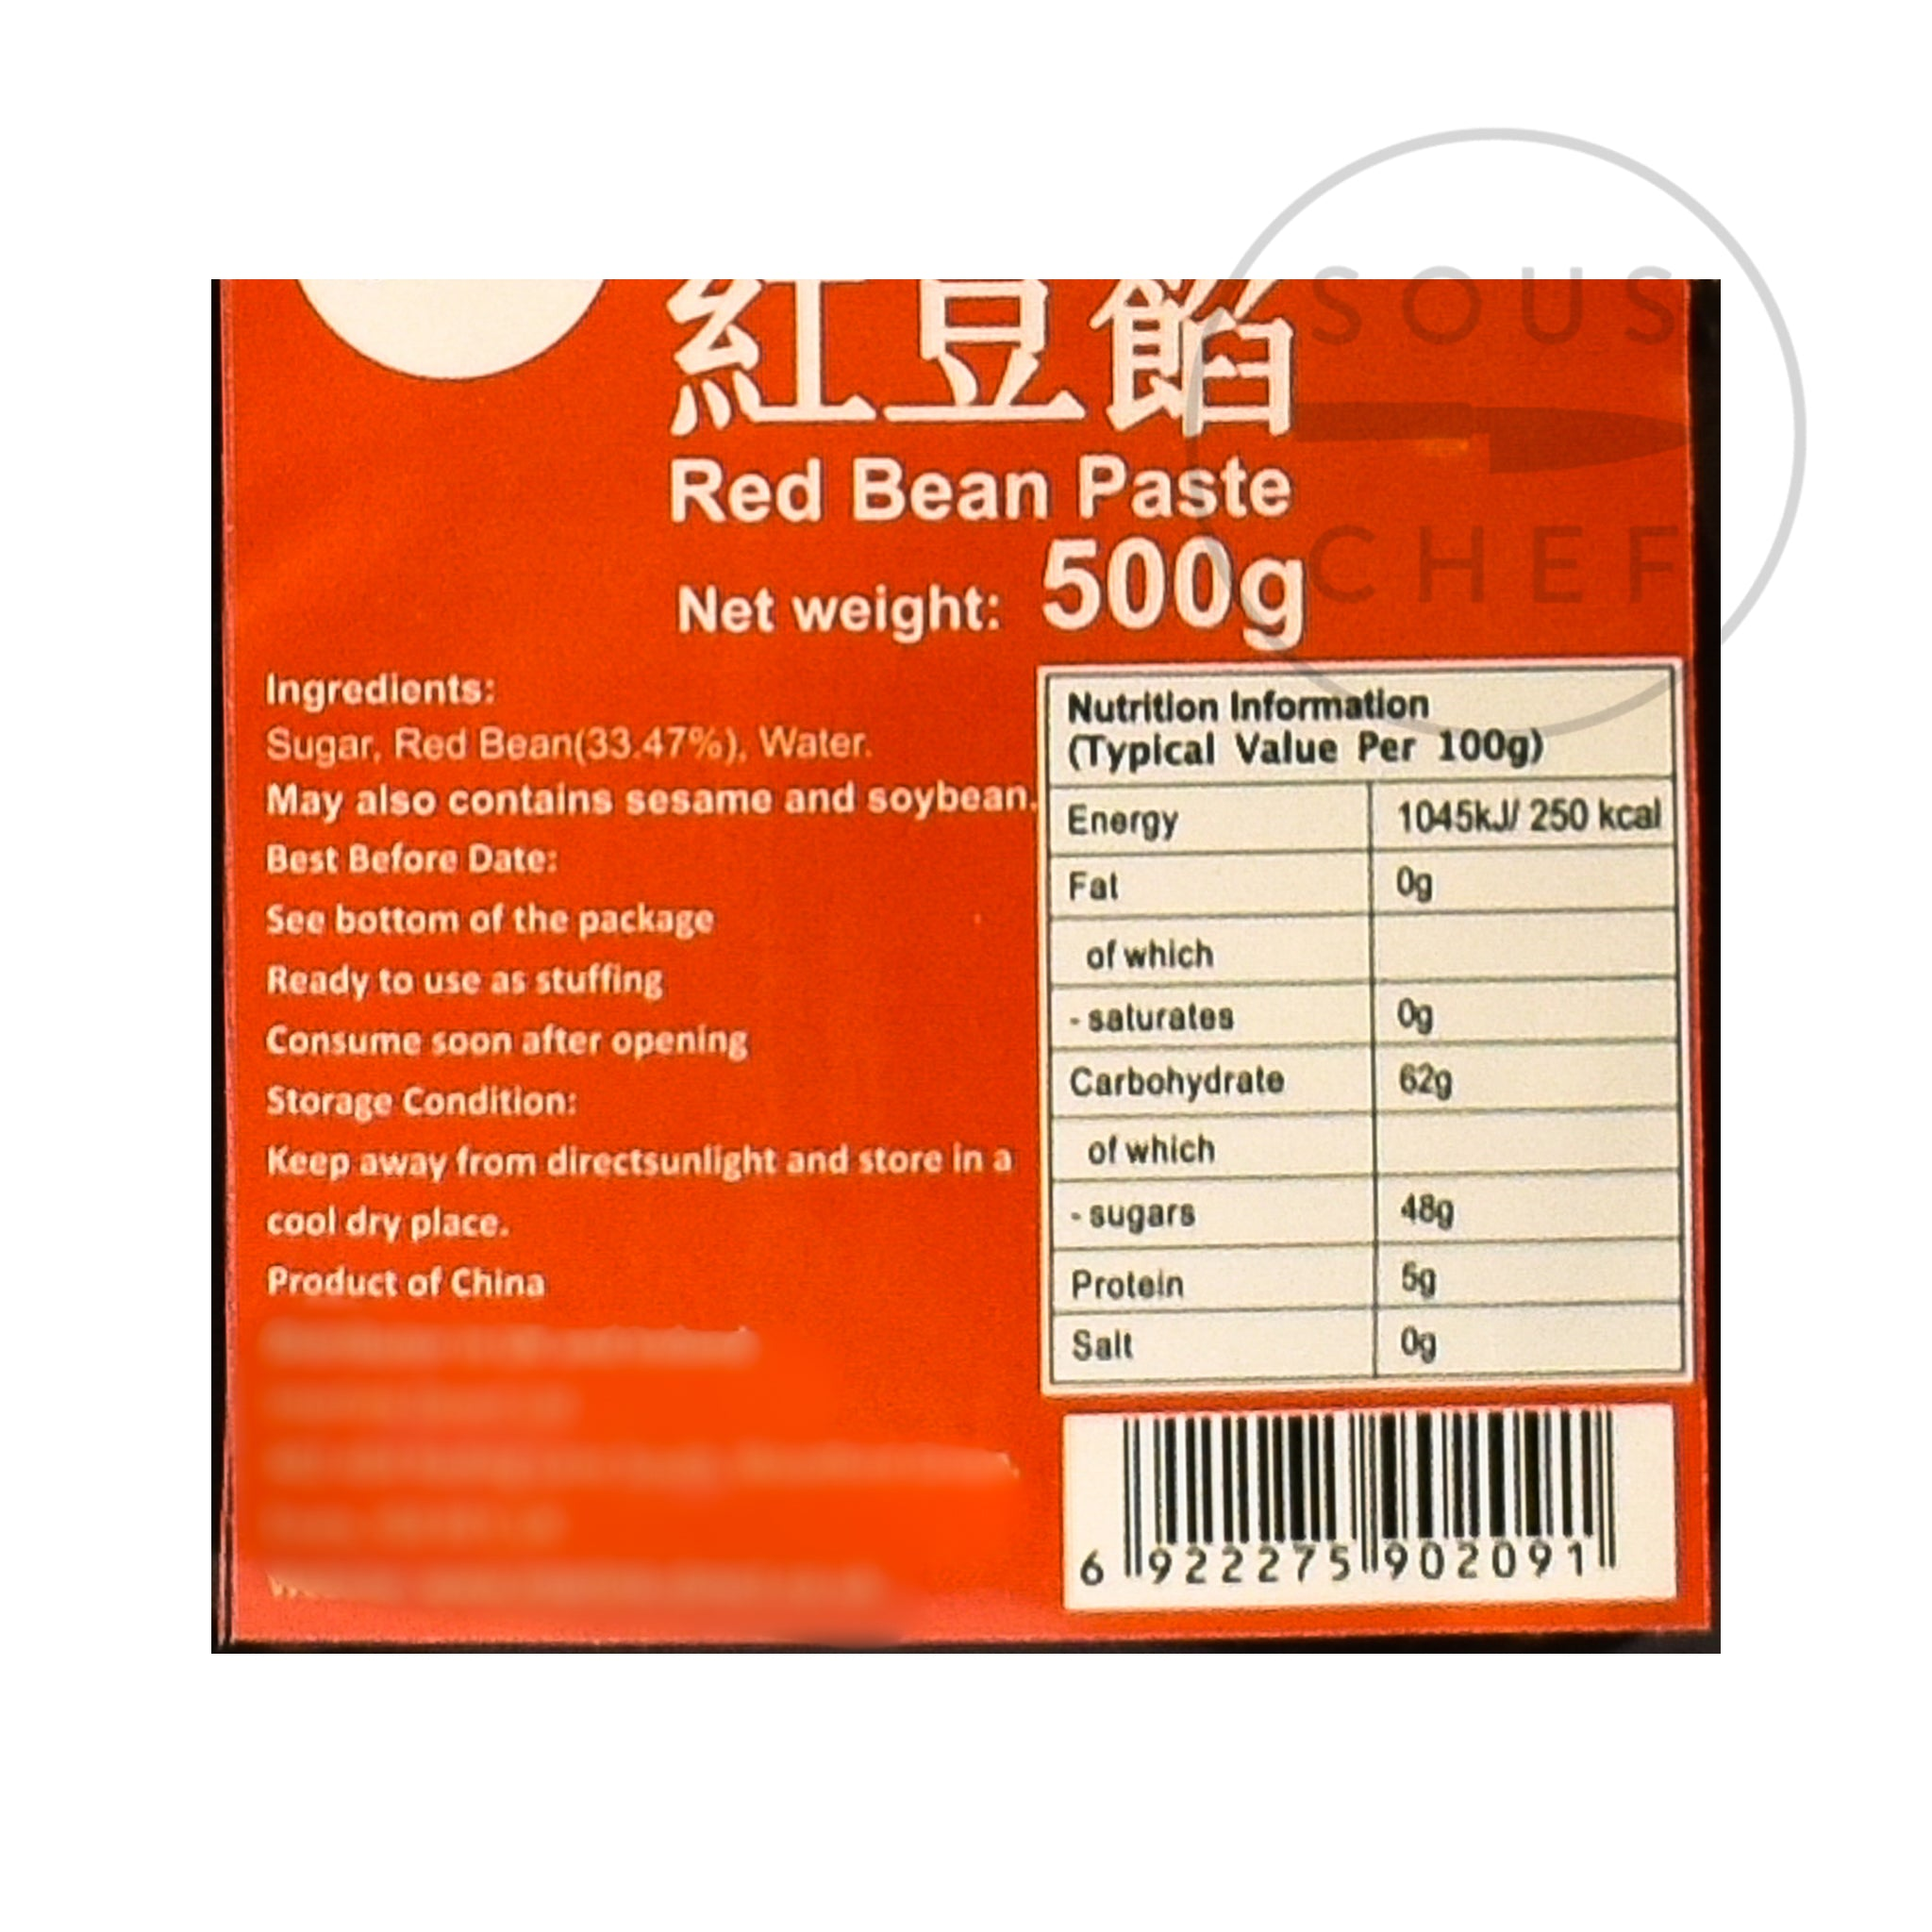 Sweetened Red Bean Paste 500g  nutritional information ingredients